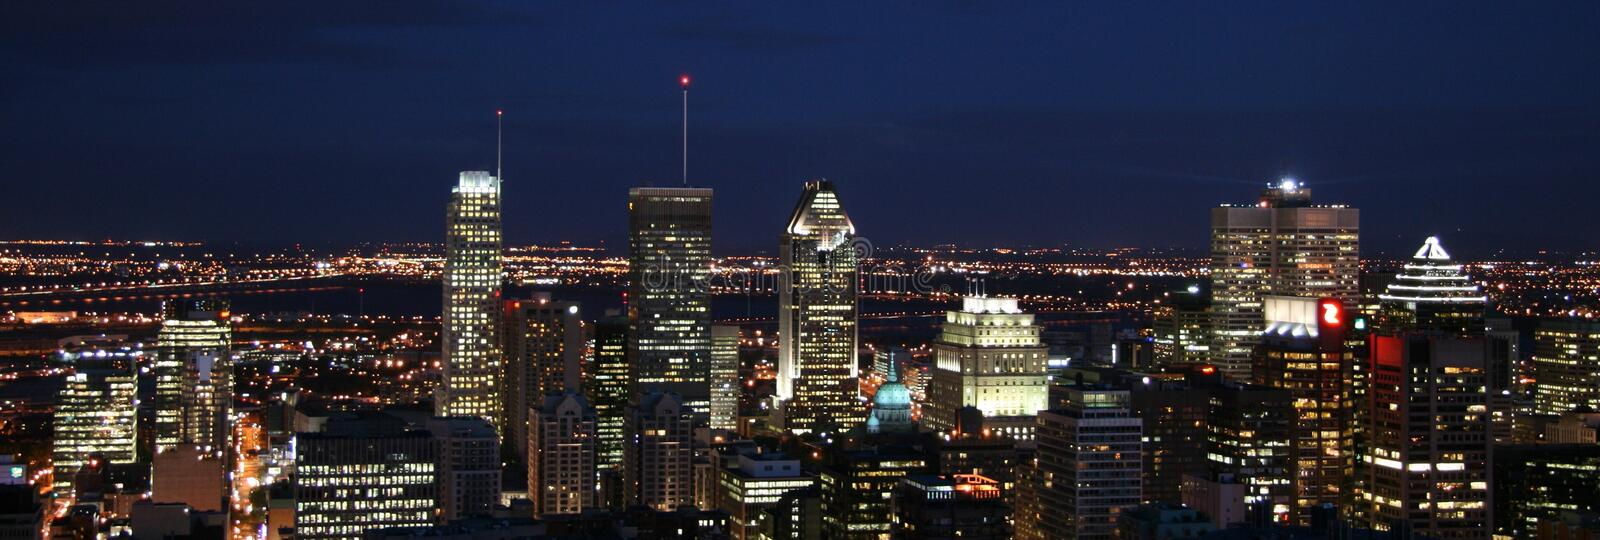 Cityscape montreal Canada Lights Skyline royalty free stock photo